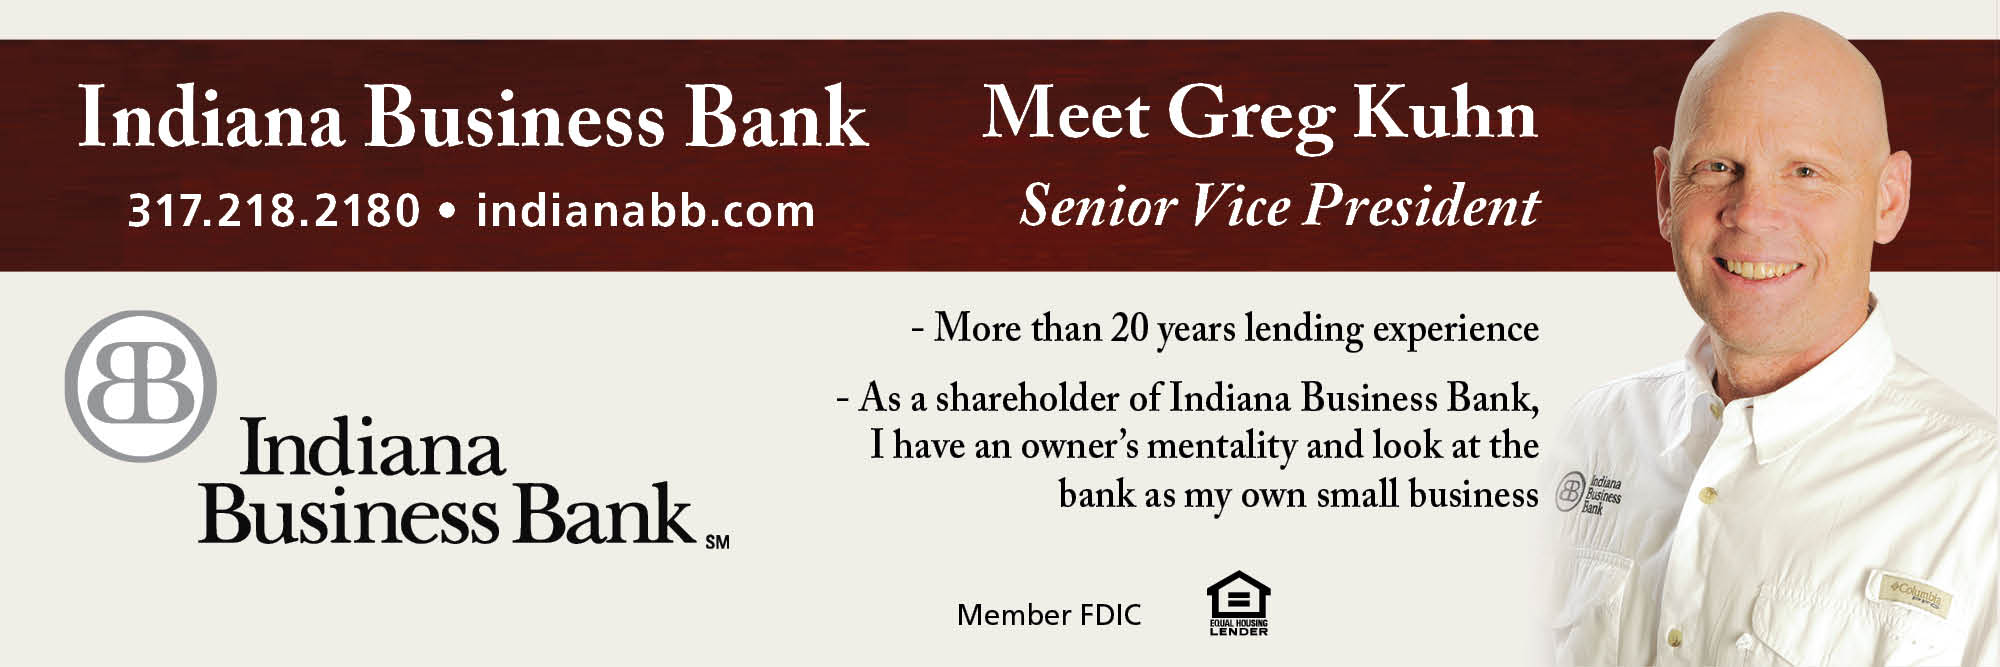 indiana_business_bank_web_ad_aug_sep_2015